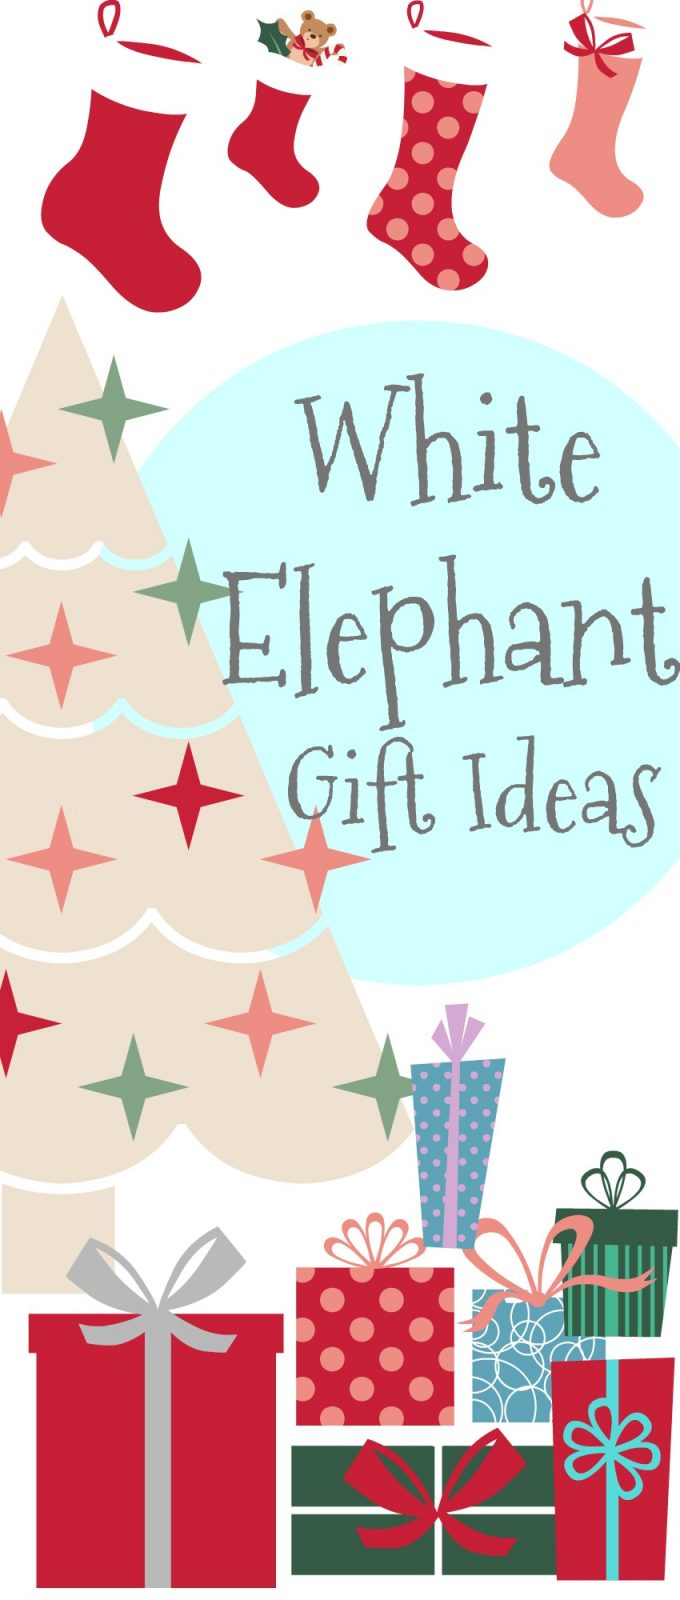 White Elephant Gift Ideas - The Cards We Drew